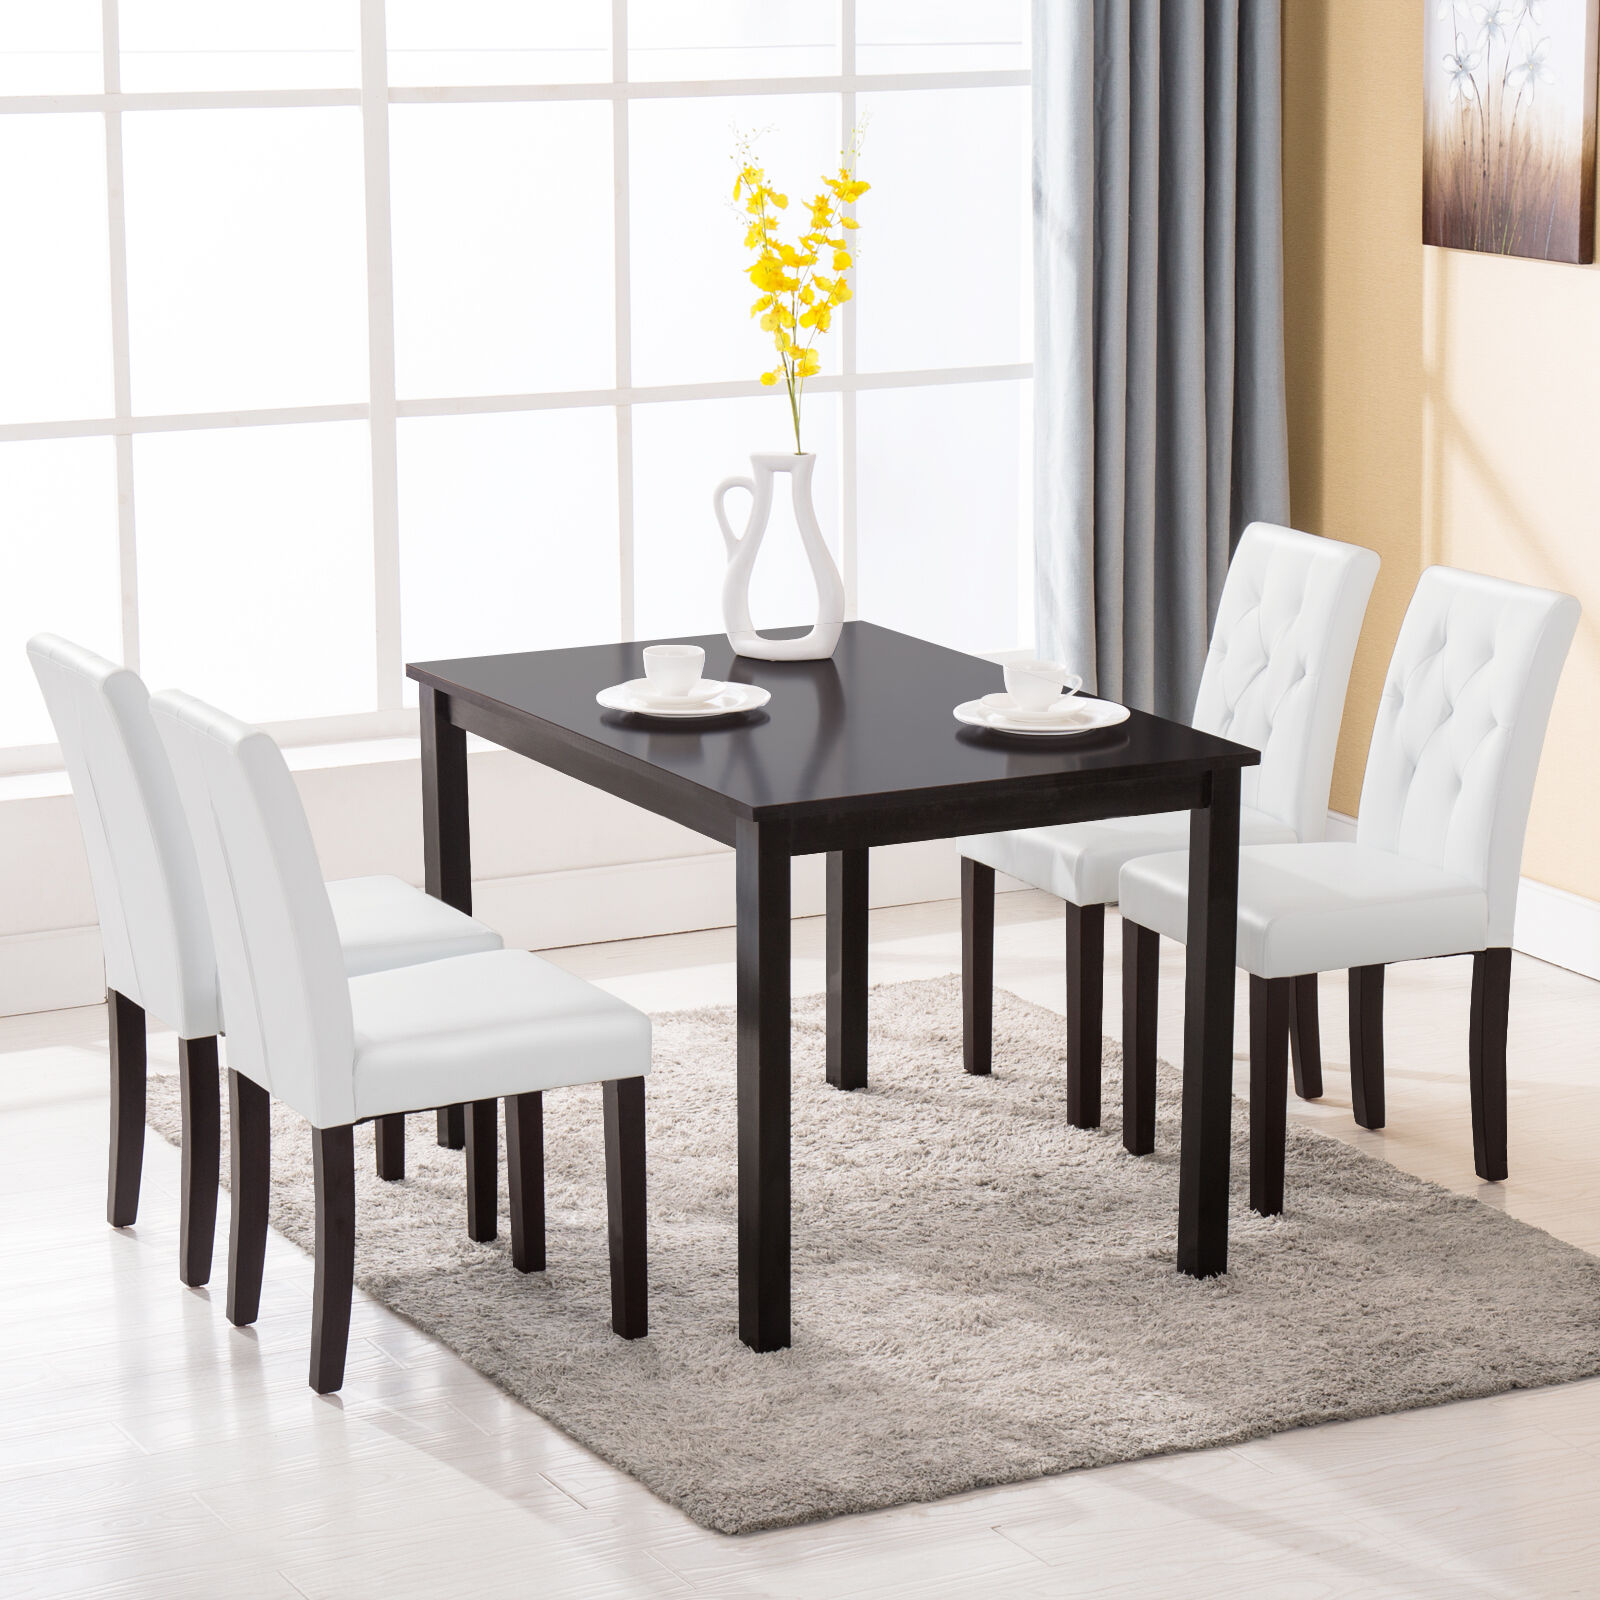 4 Chairs In Dining Room